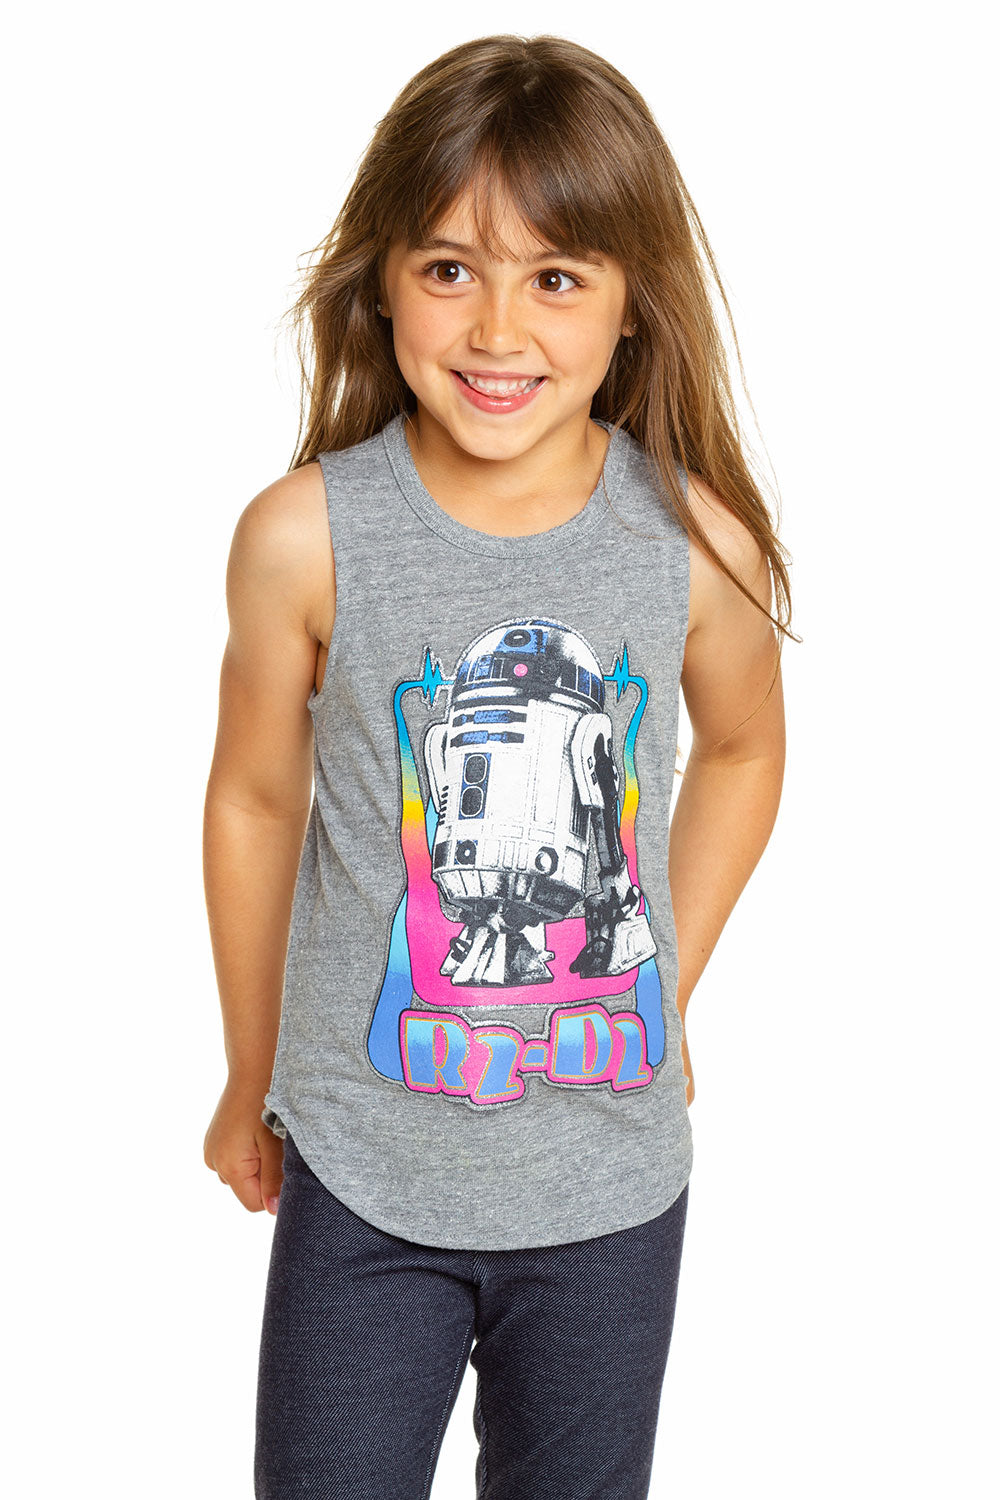 Star Wars - R2-D2, GIRLS, chaserbrand.com,chaser clothing,chaser apparel,chaser los angeles